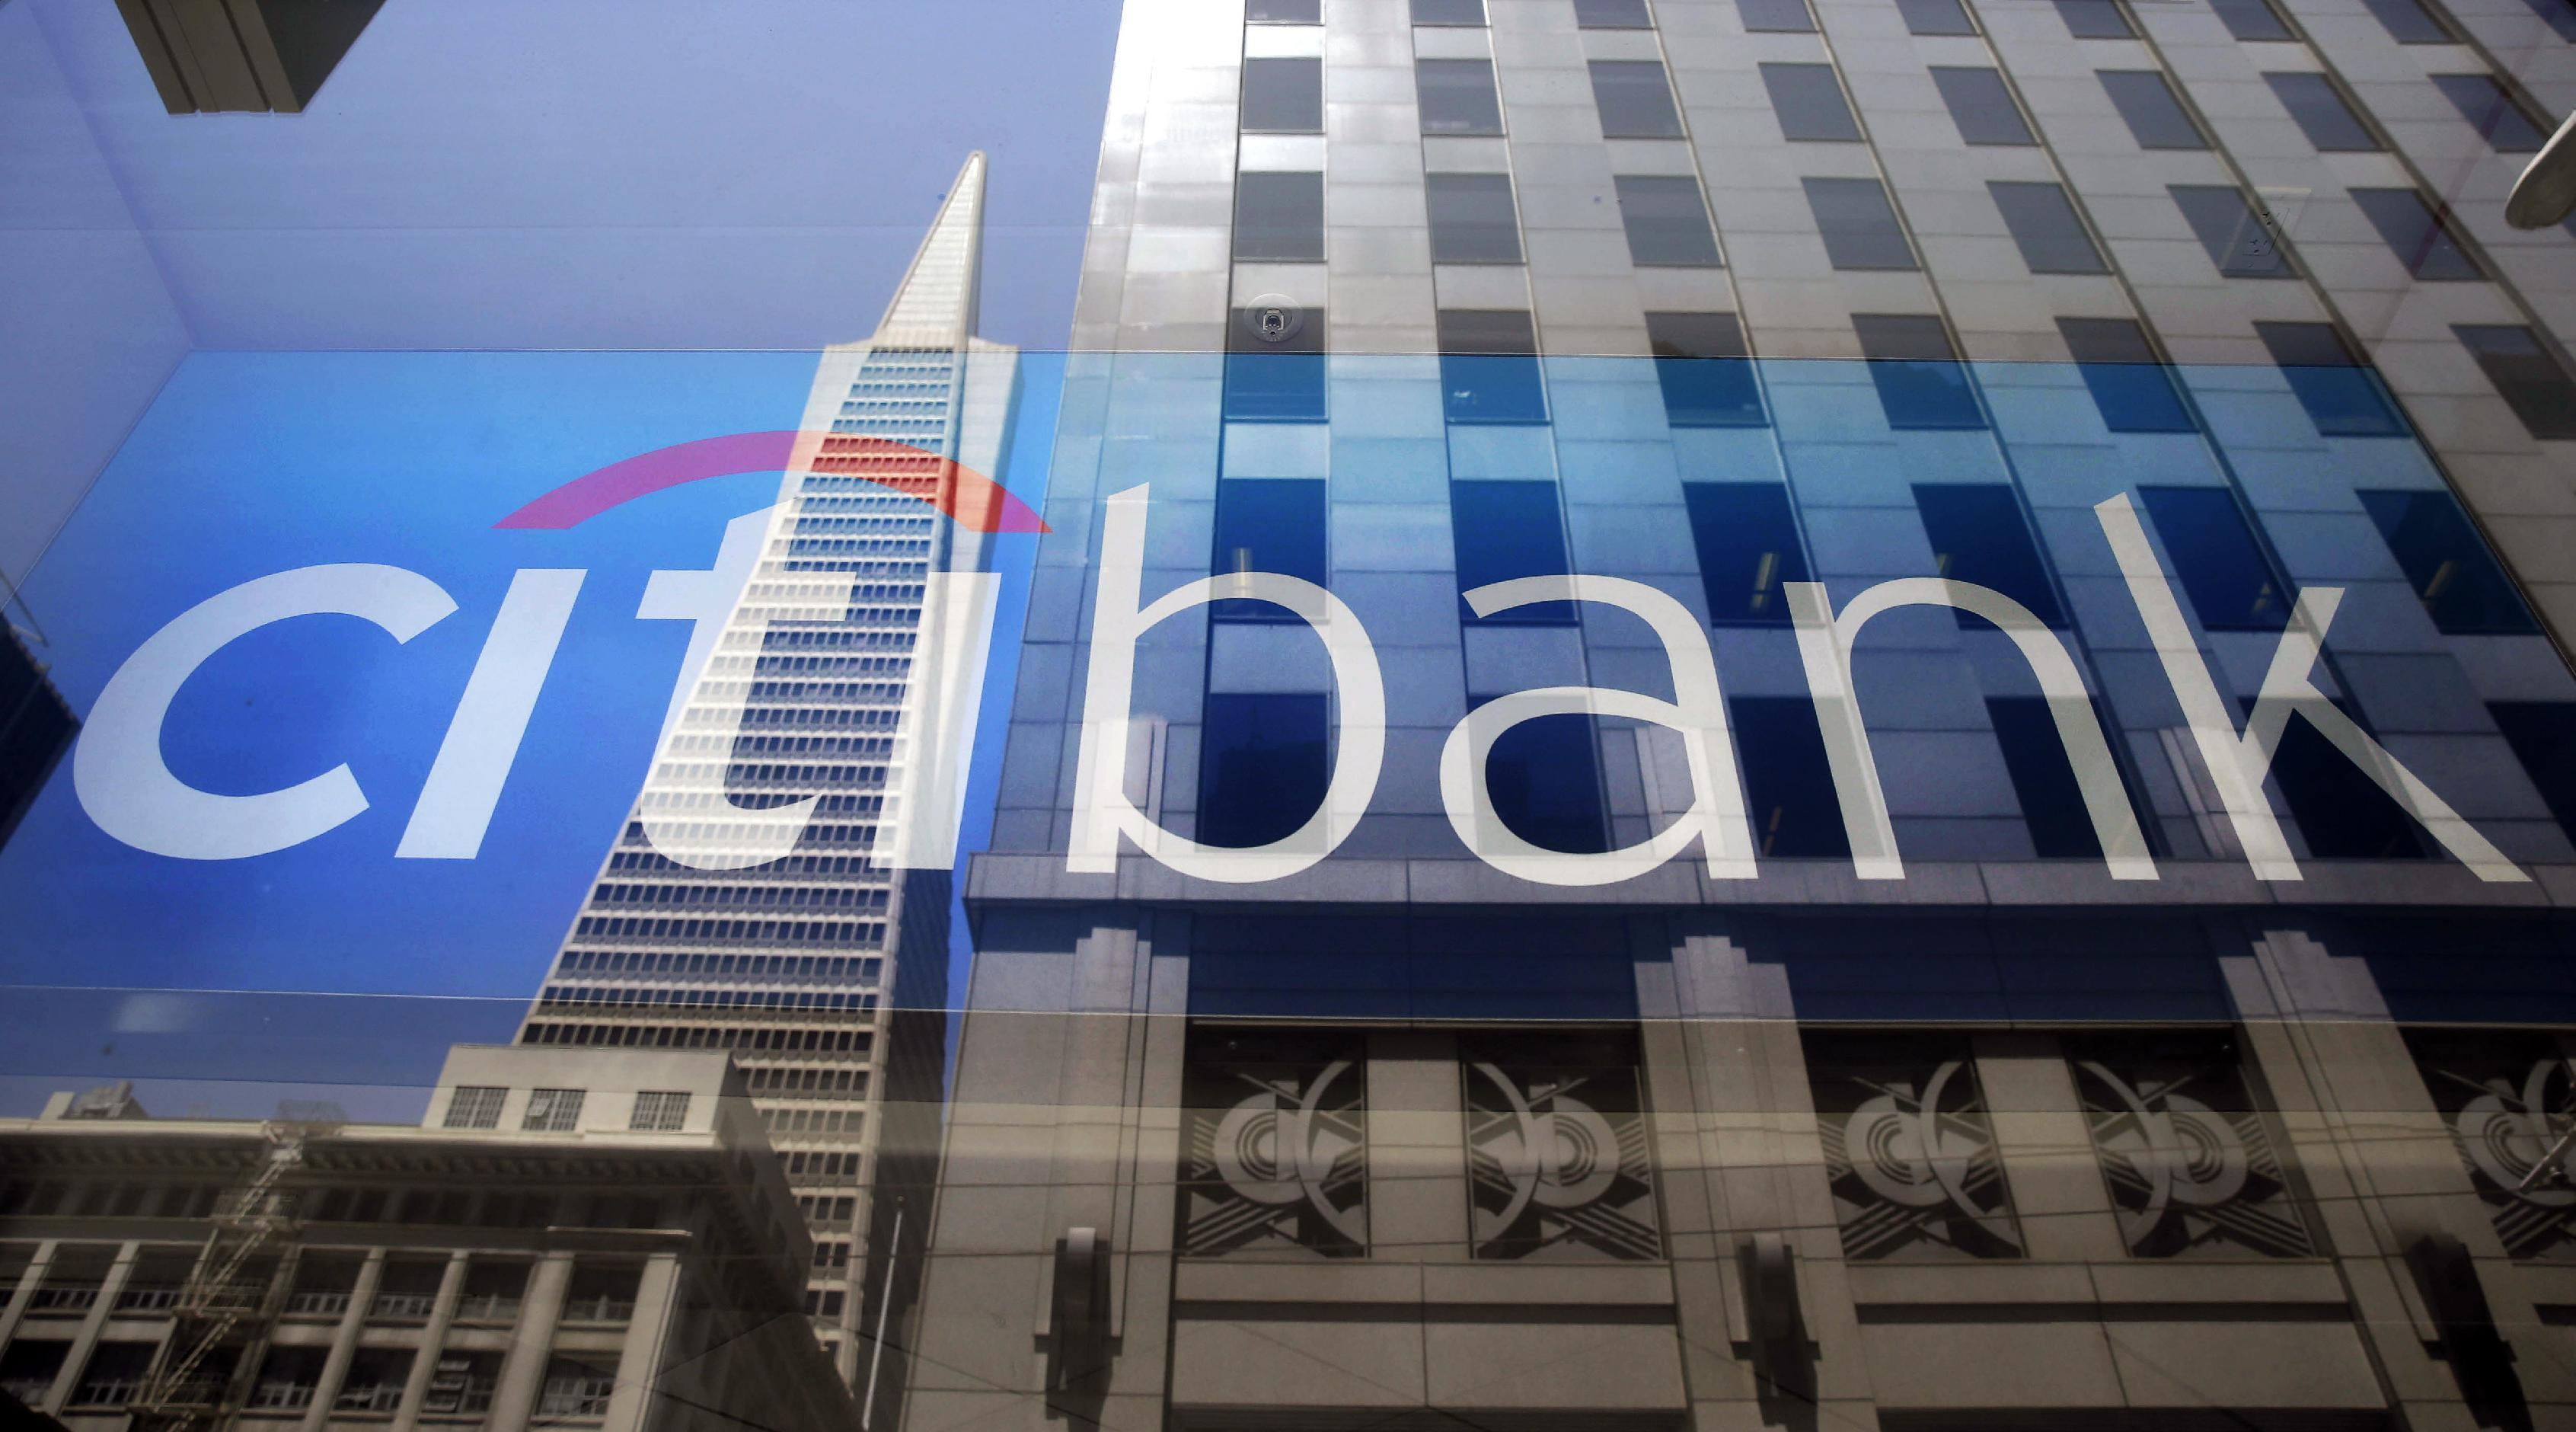 Citigroup's earnings beat analysts' forecasts